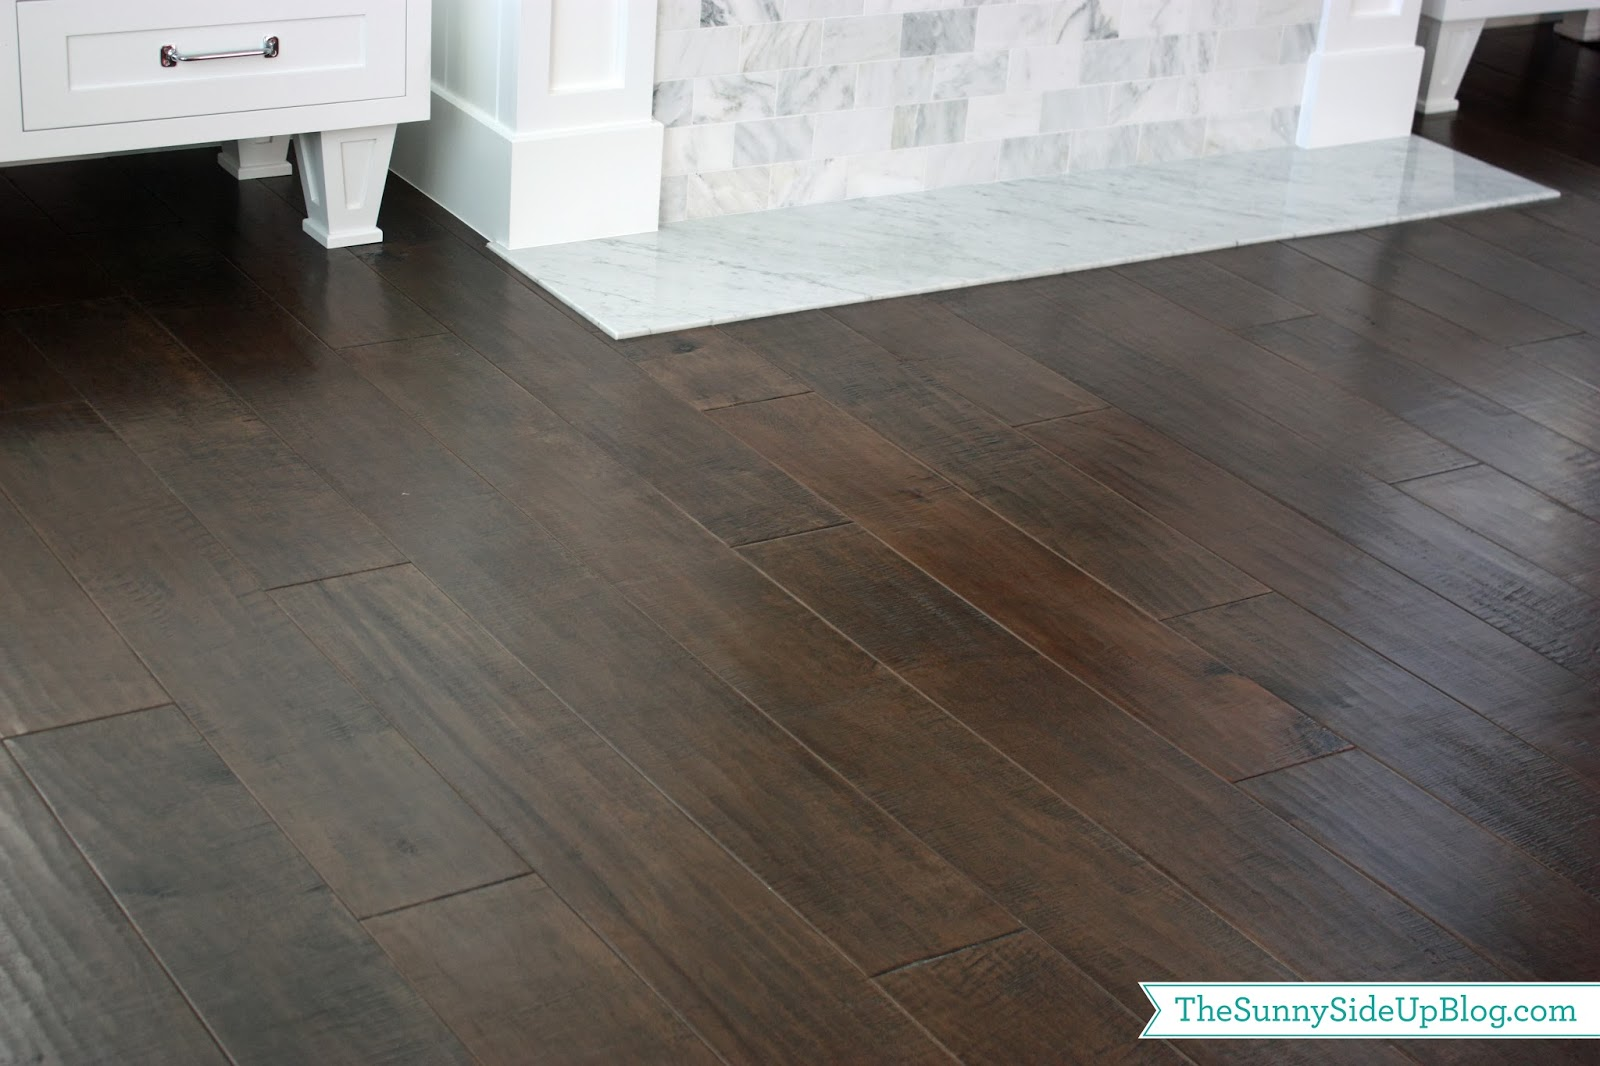 Hardwood flooring the sunny side up blog for Dark hardwood floors